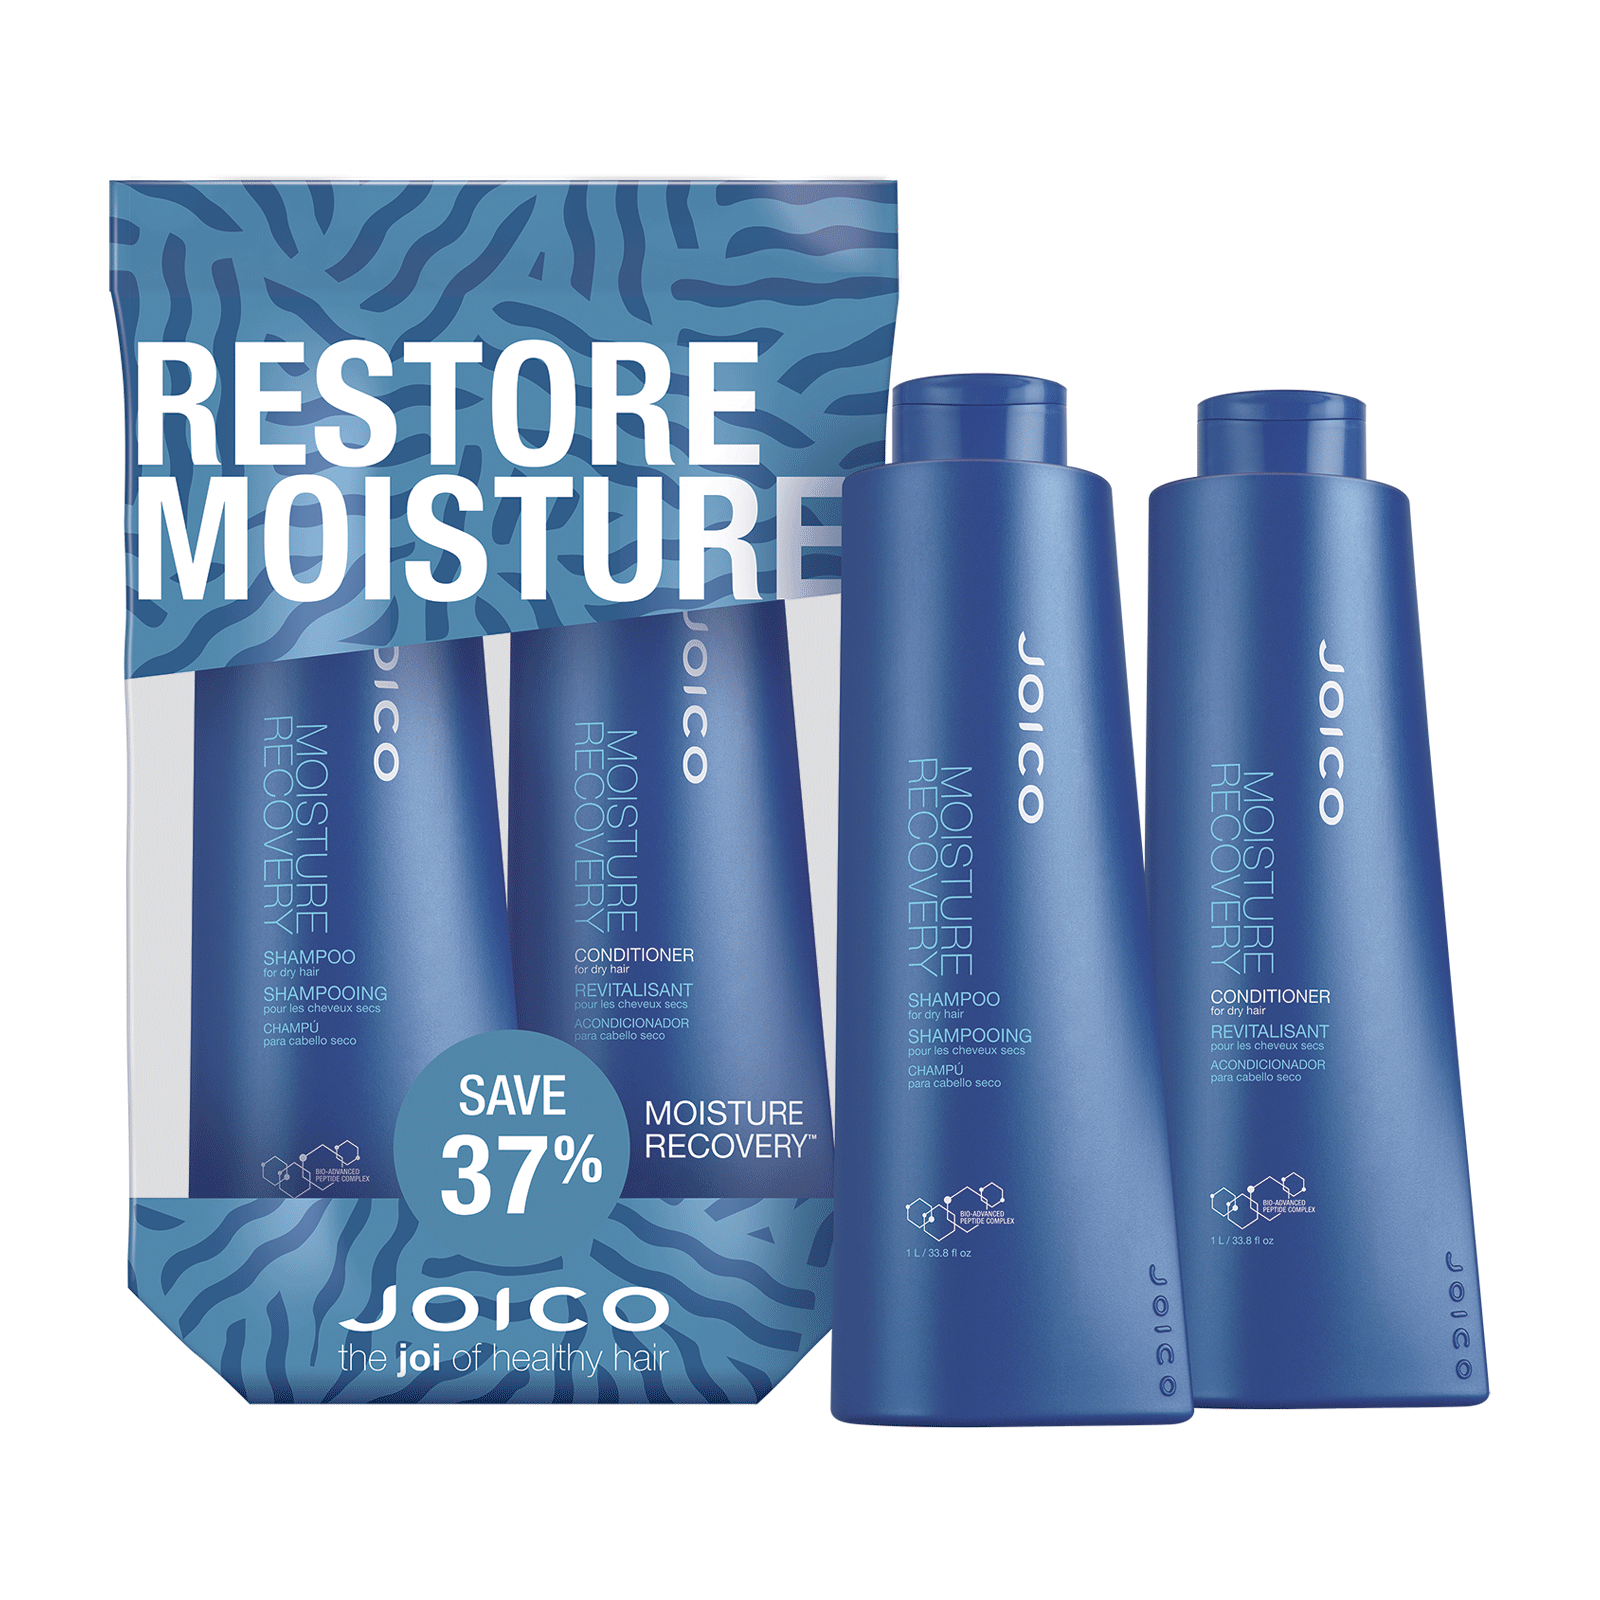 Moisture Recovery Shampoo, Conditioner Liter Duo - Joico